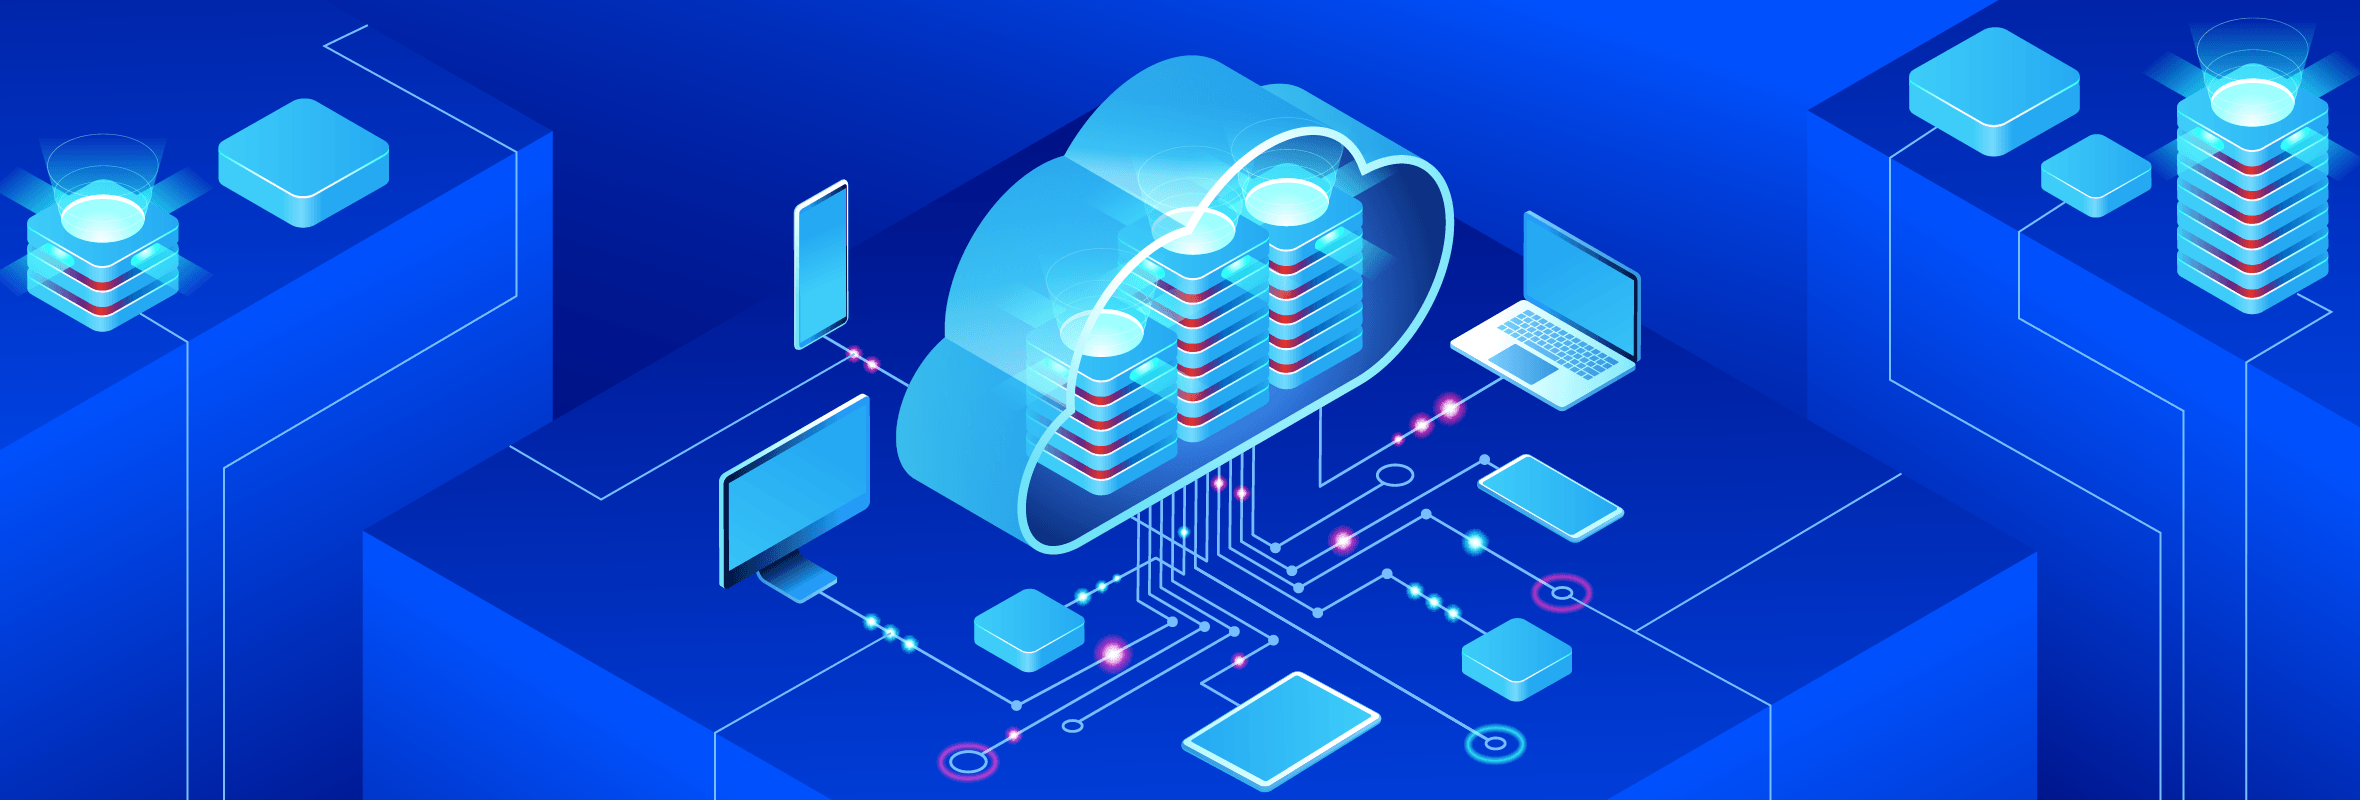 Determining whether or not cloud or on-prem is right for your firm